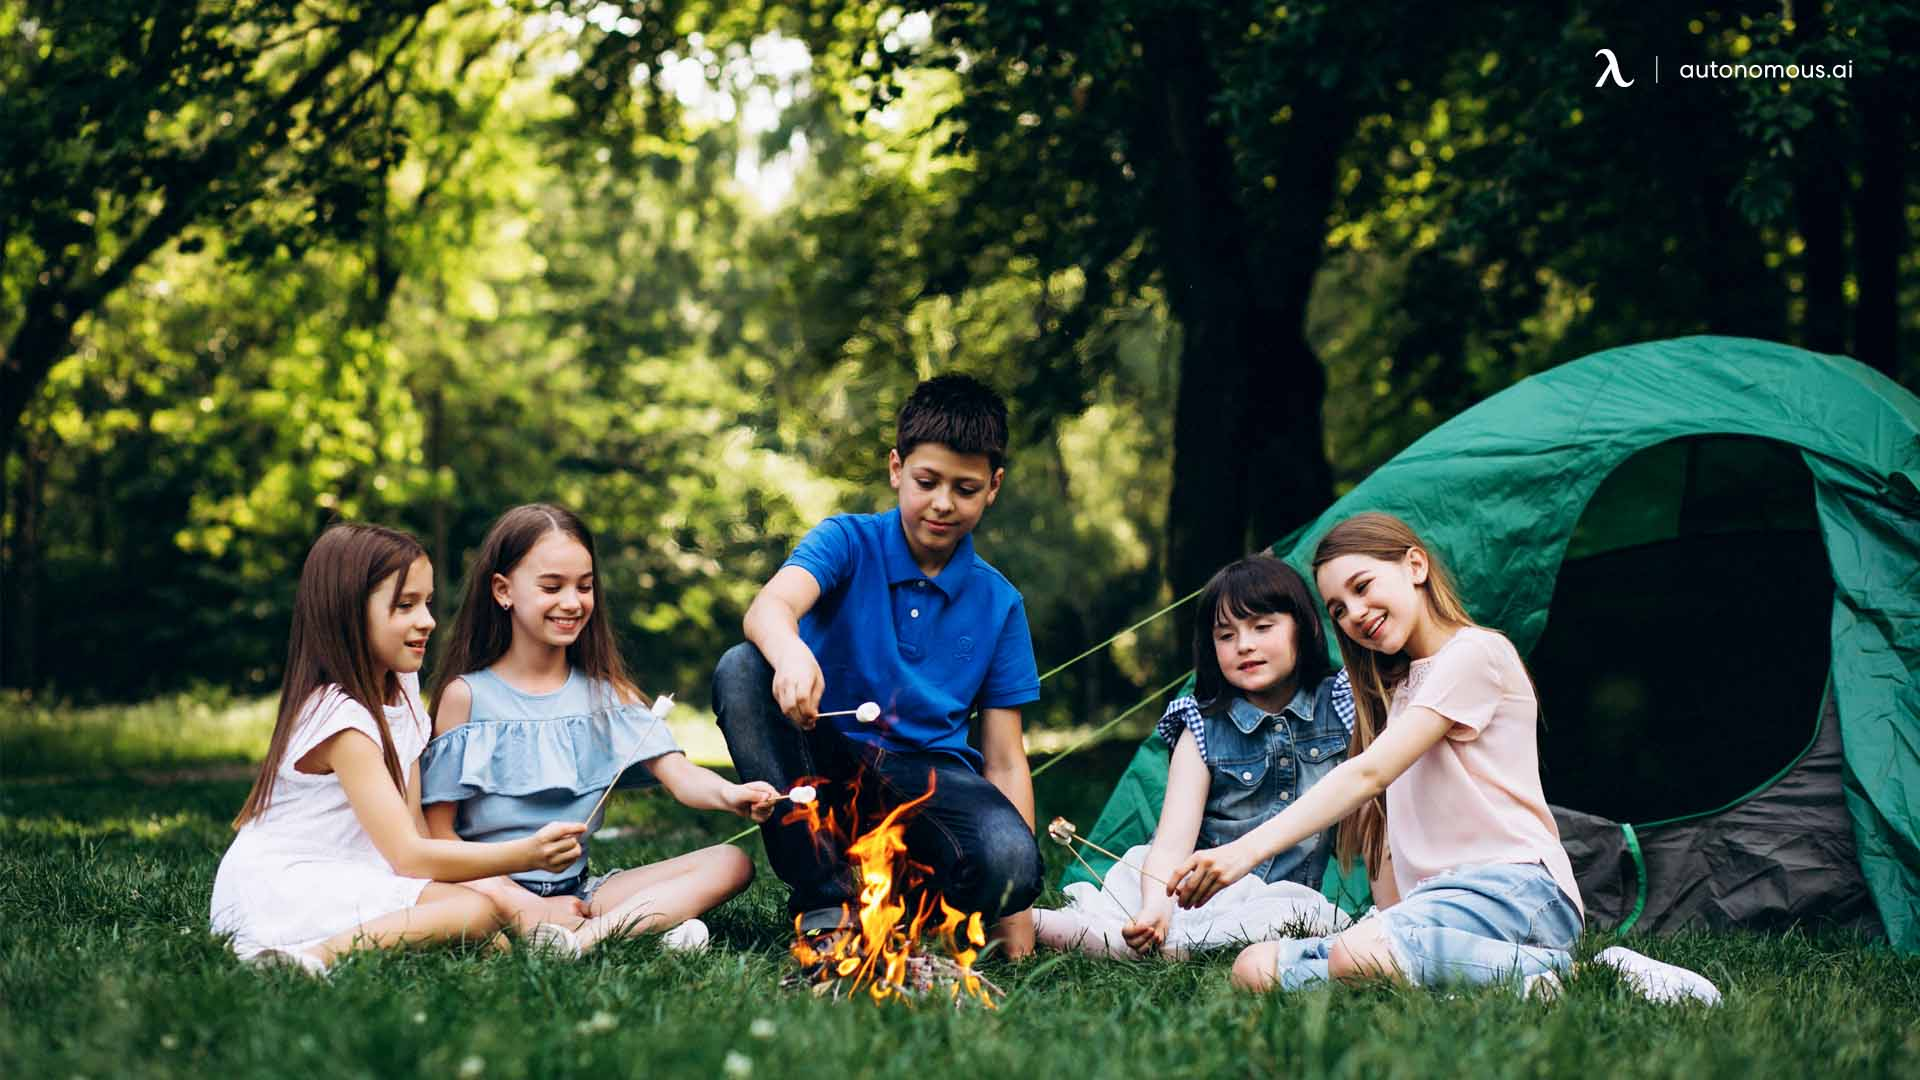 13 Fun Summer Activities for Kids That Are Easy to Do